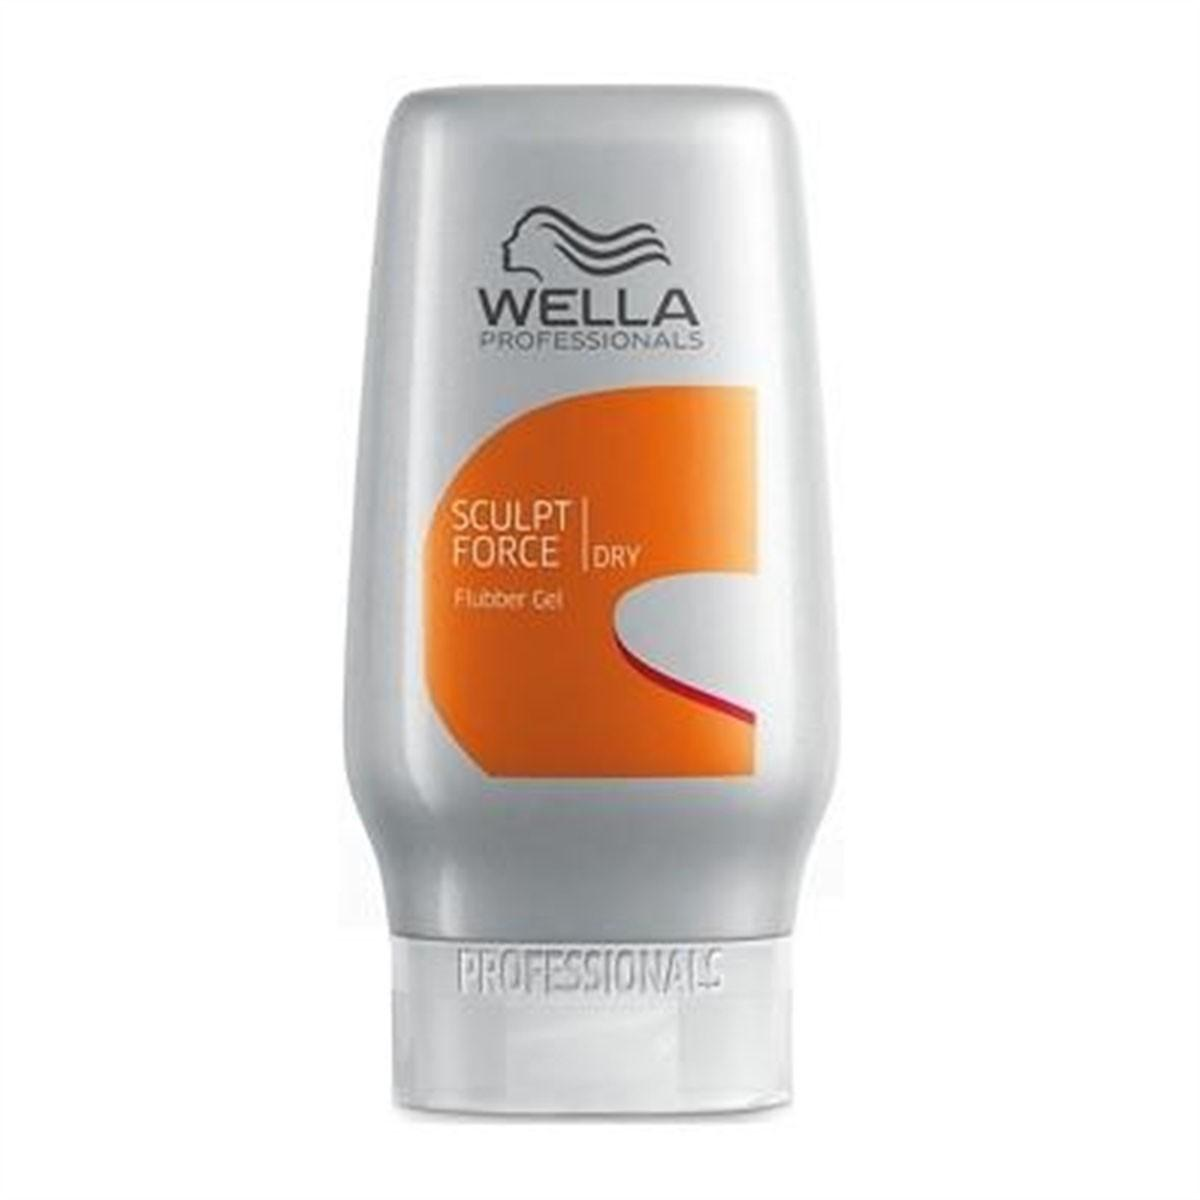 Wella Sculpt Force Dry Gel 250 ml